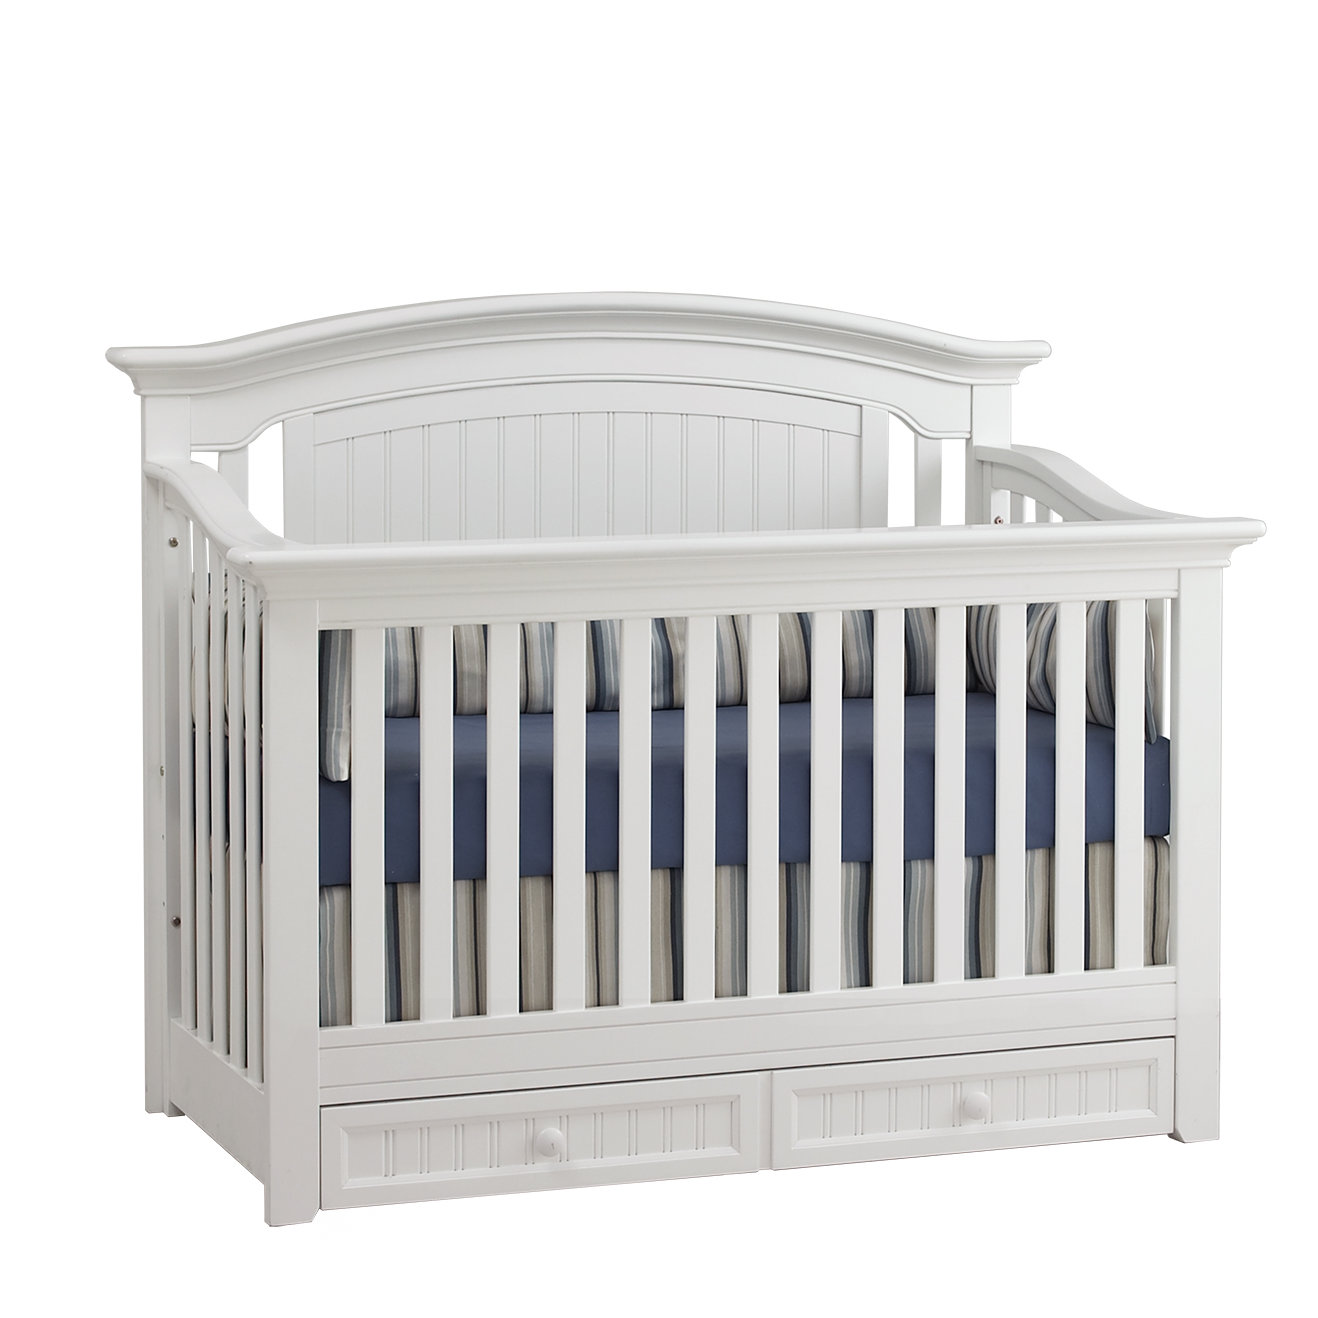 cribs with storage underneath winchester 4-in-1 convertible crib PZYBESK